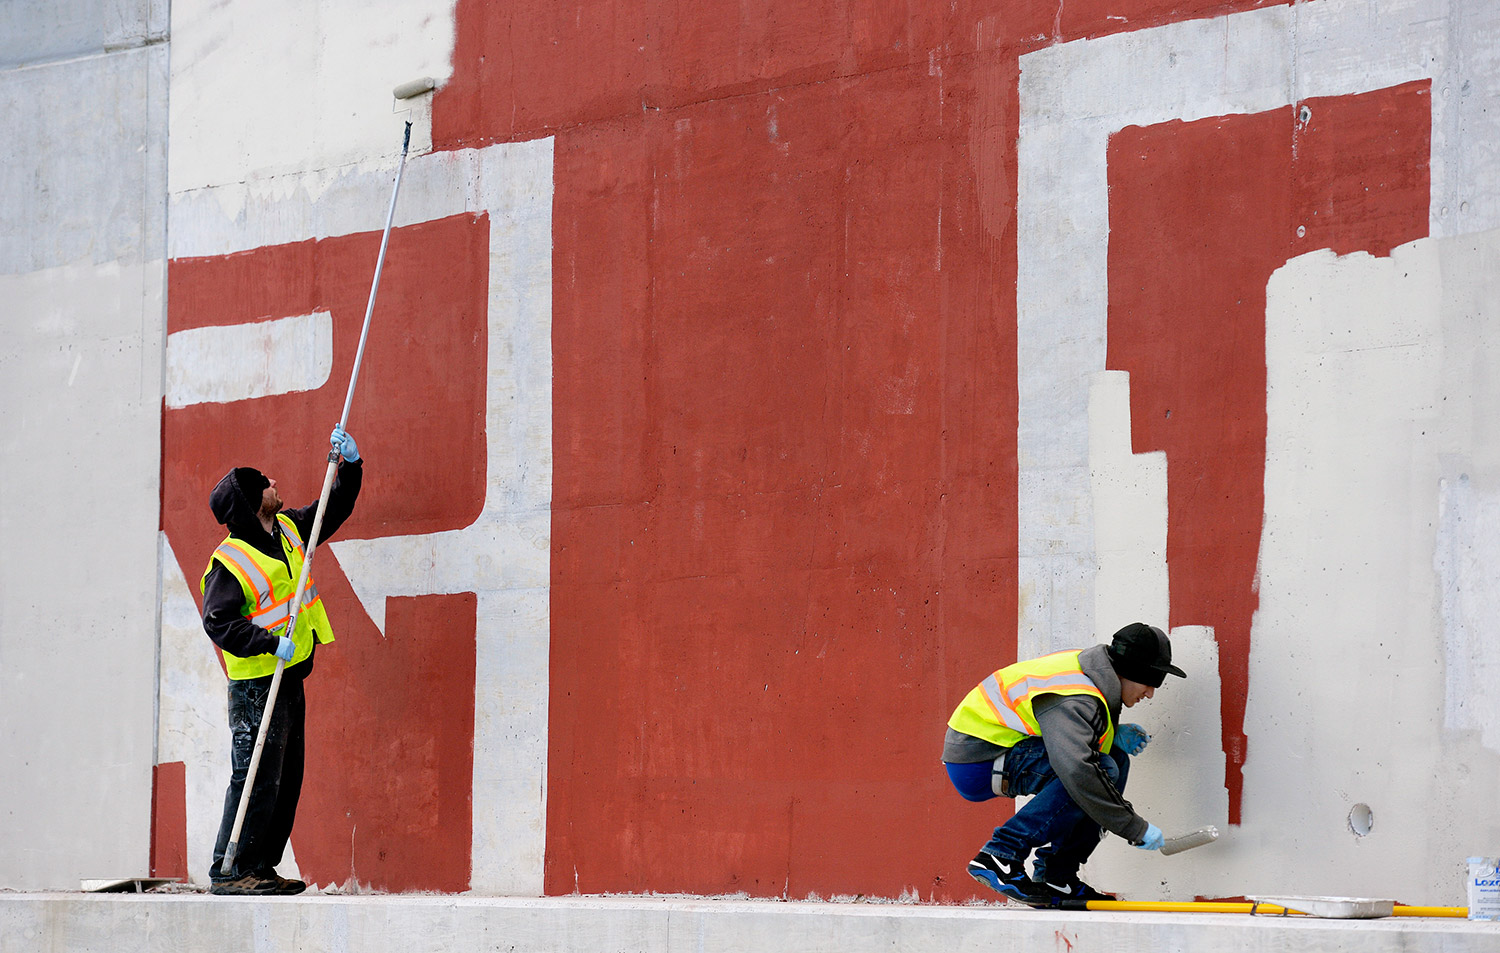 Tom Kane, left, and Caleb Lewis of Graffiti Busters work together to clean up graffiti on the Martin's Point Bridge Wednesday in Falmouth. Kane is the director of student development at Youth Building Alternatives and Lewis is a student with the program.